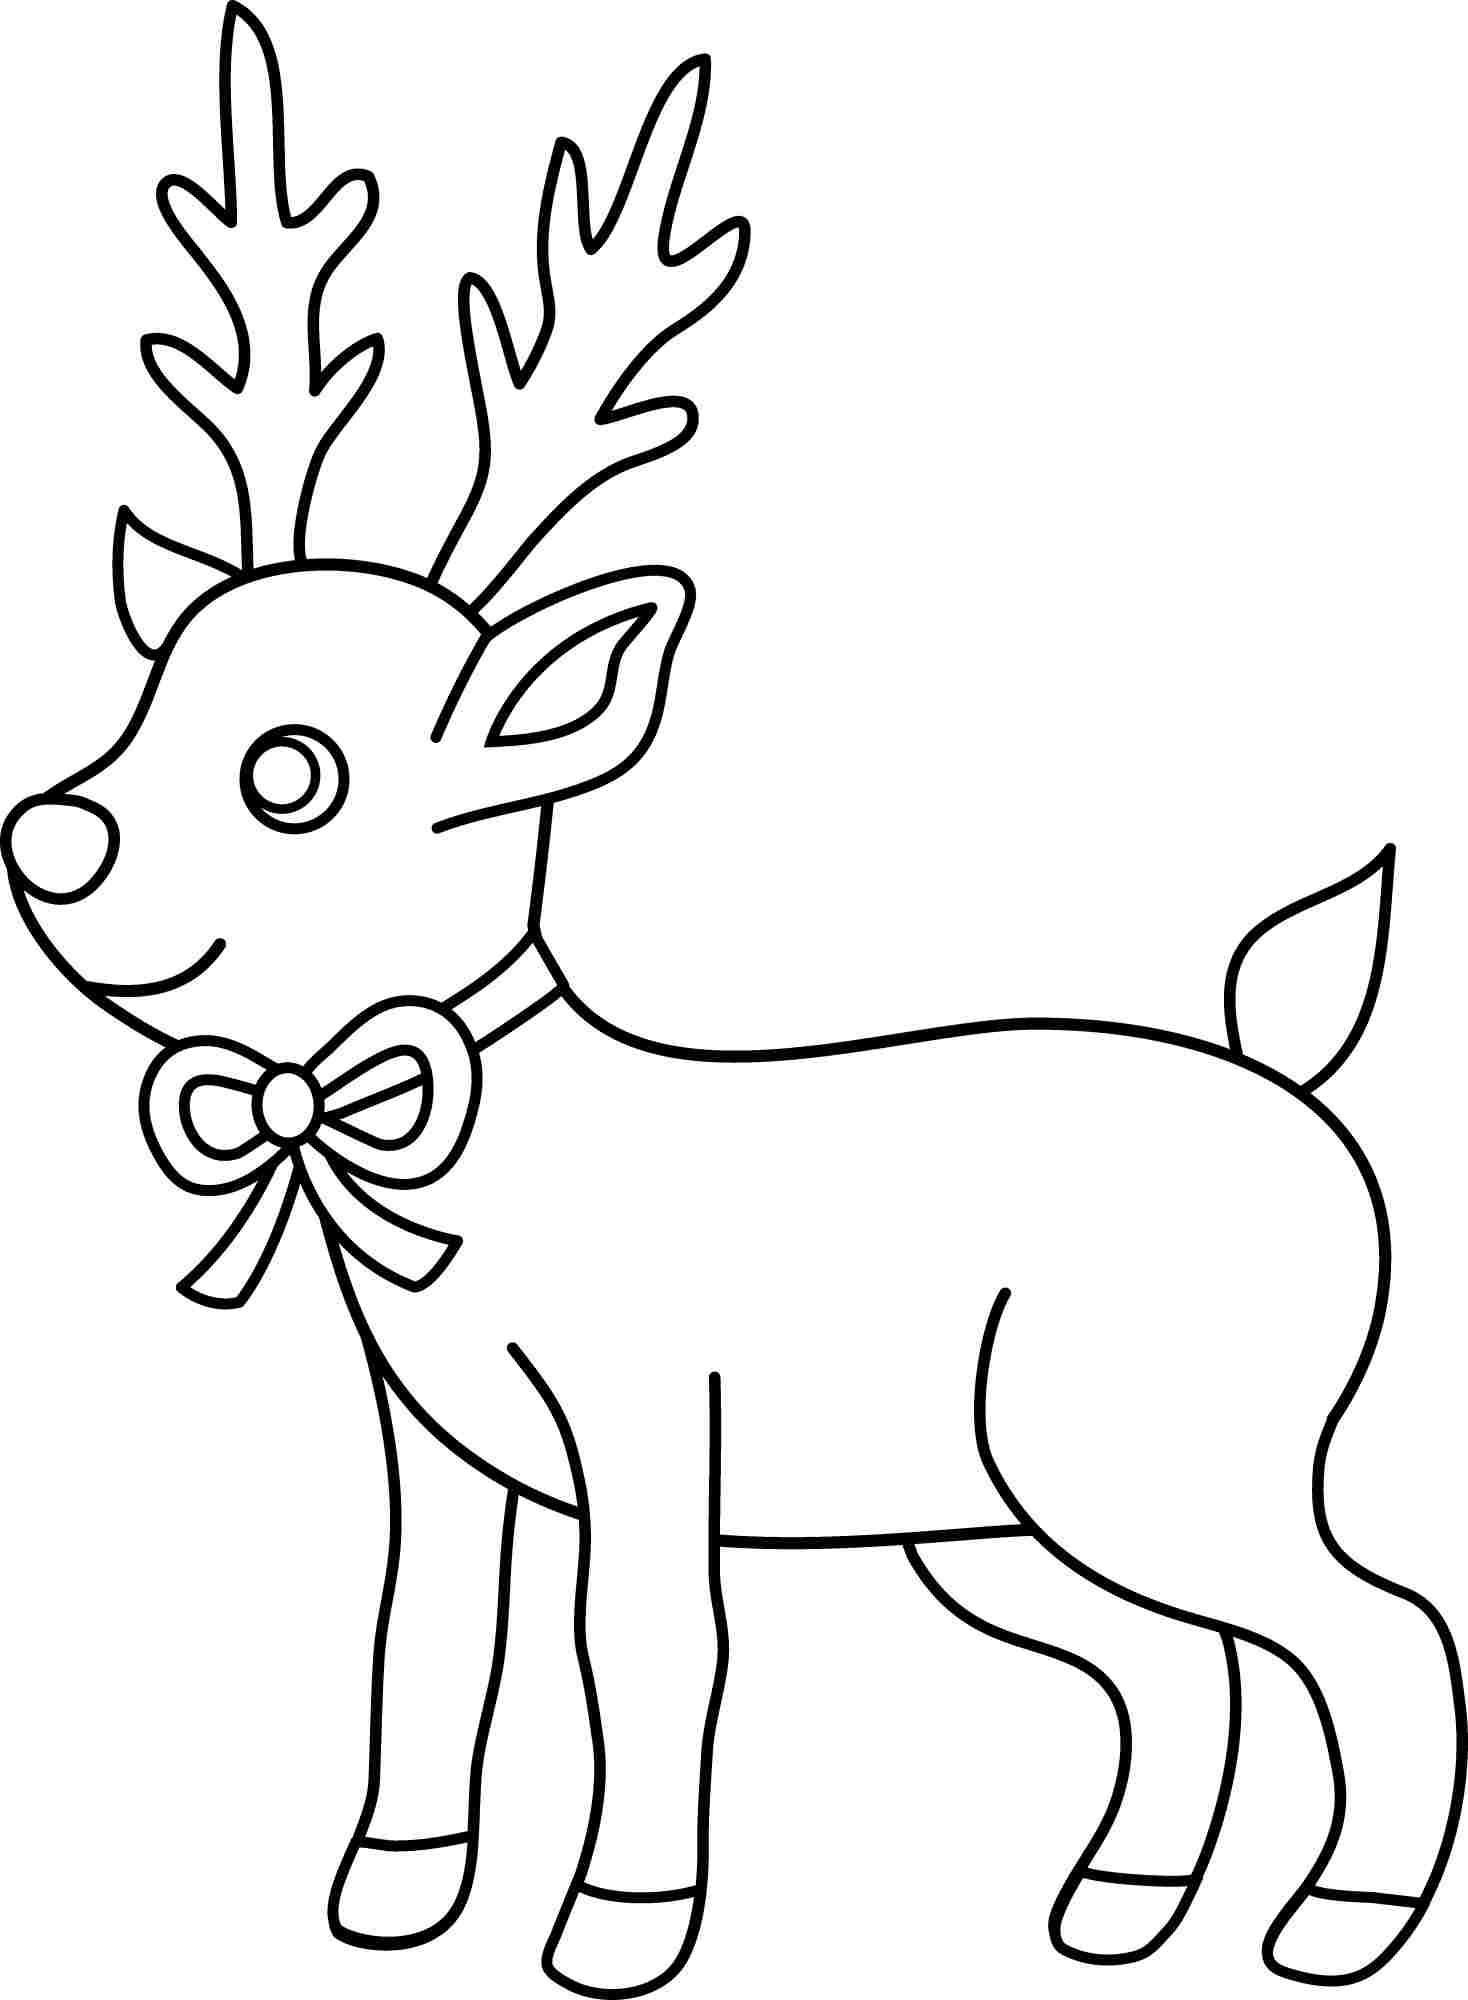 1468x2000 Christmas Coloring Pages For Kids Has Baby Jesus Ornaments Id